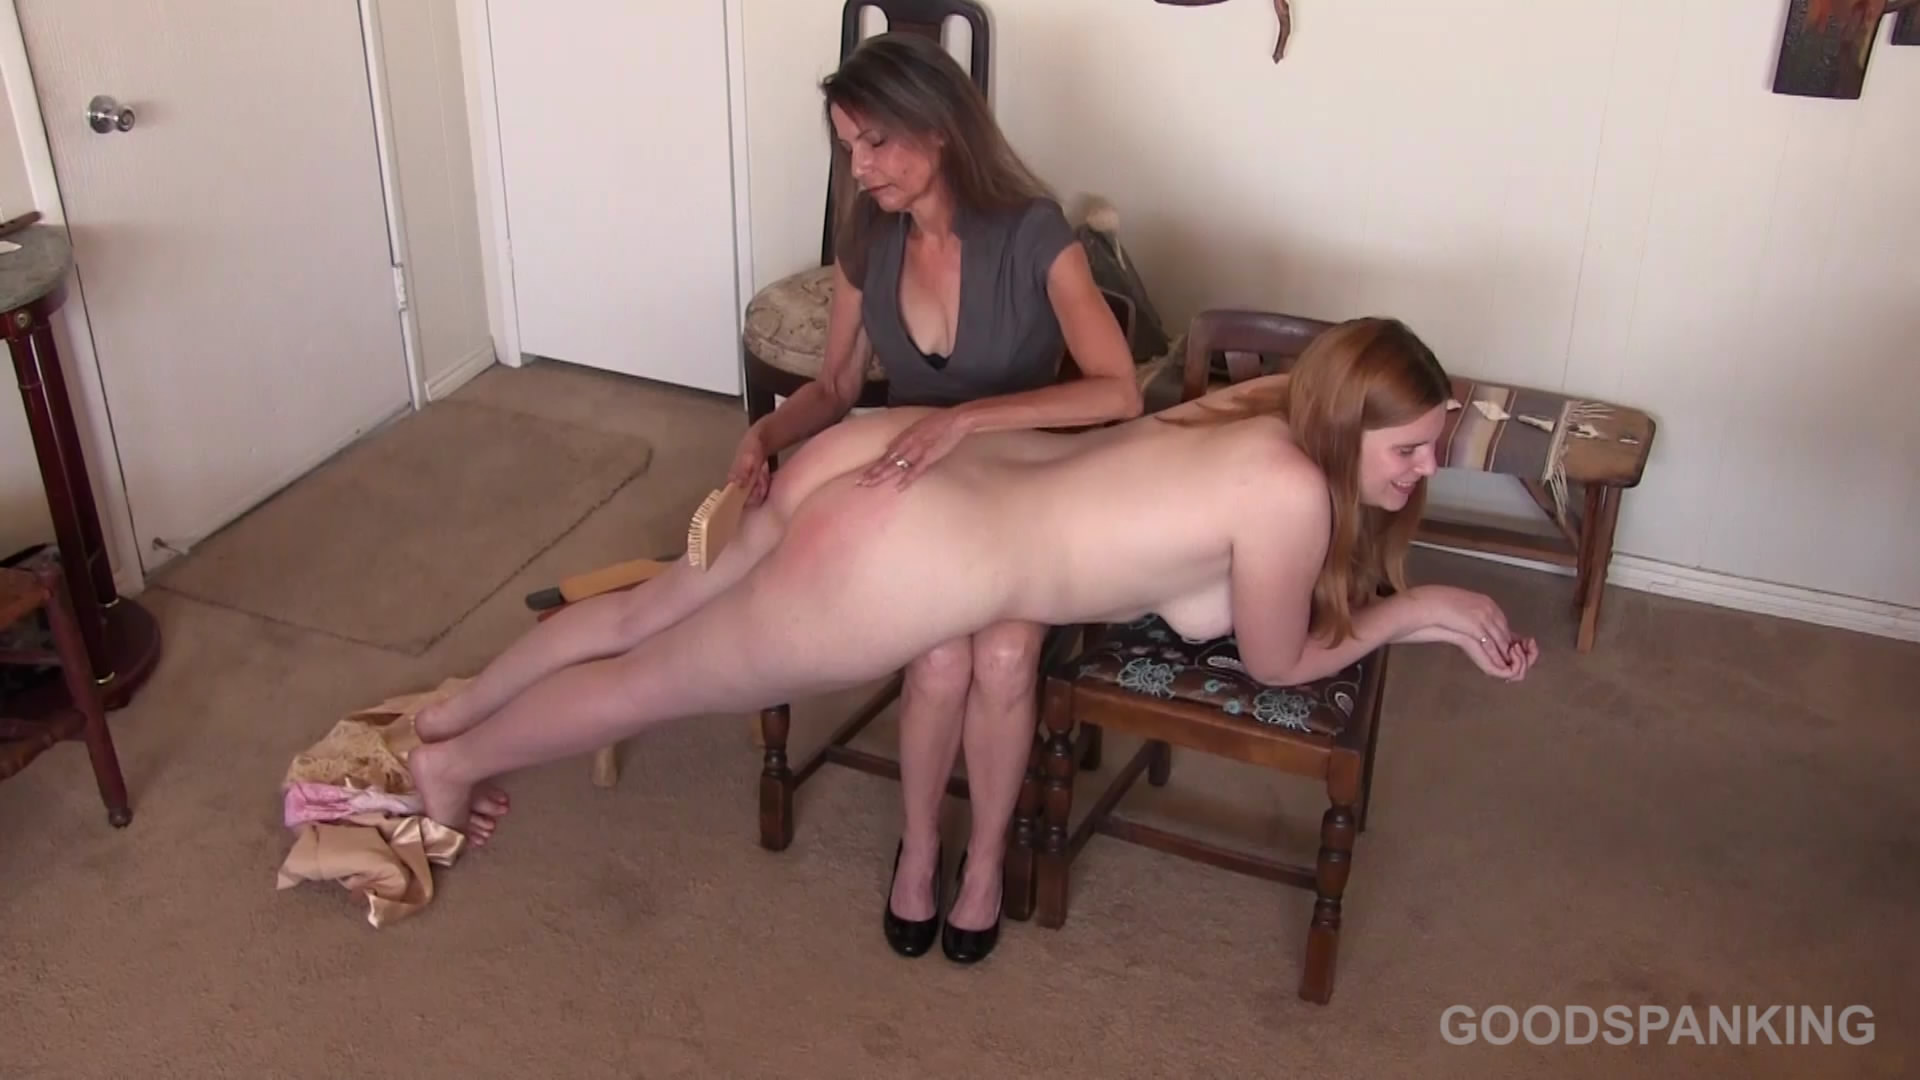 Good Spanking – MP4/Full HD – CHELSEA PFEIFFER,ALEX REYNOLDS – YOU'RE GONNA GET A SPANKING – PART ONE | APR. 19, 19